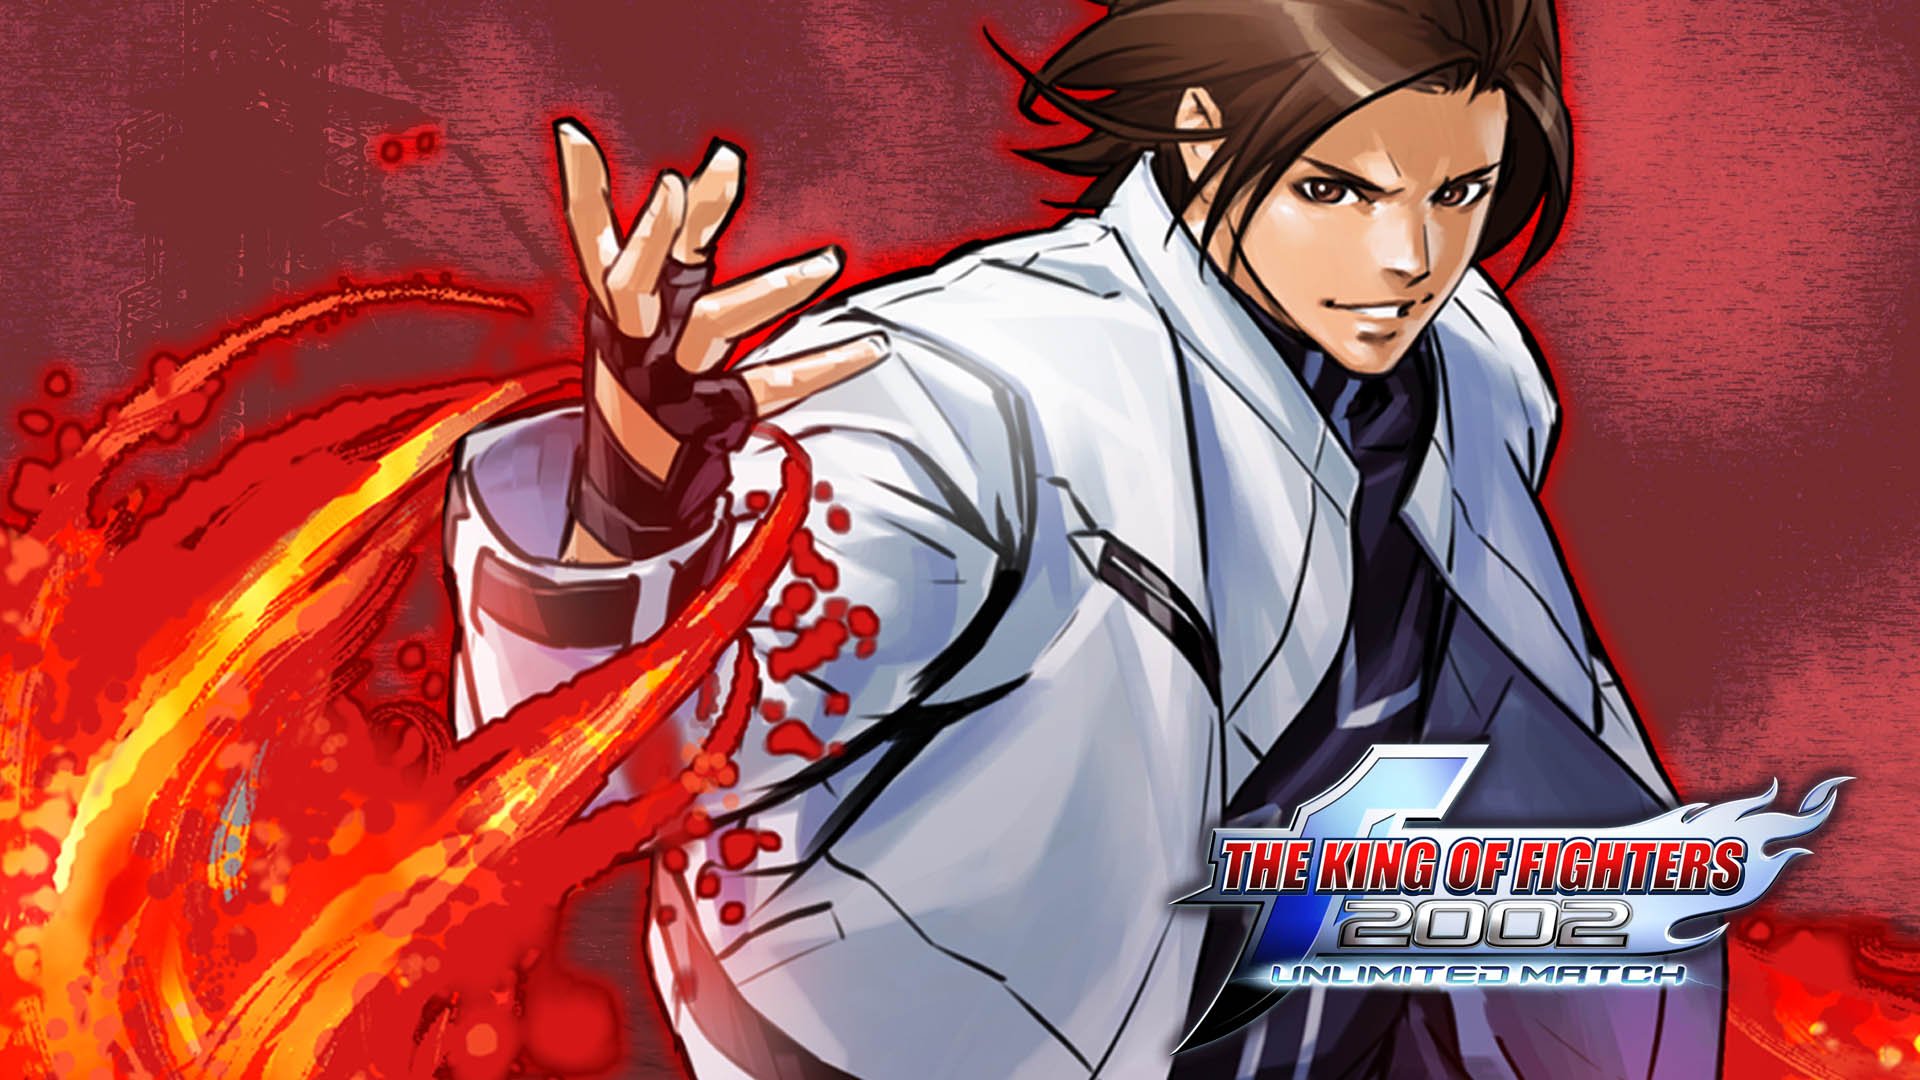 The King Of Fighters 2002 Unlimited Match Details Launchbox